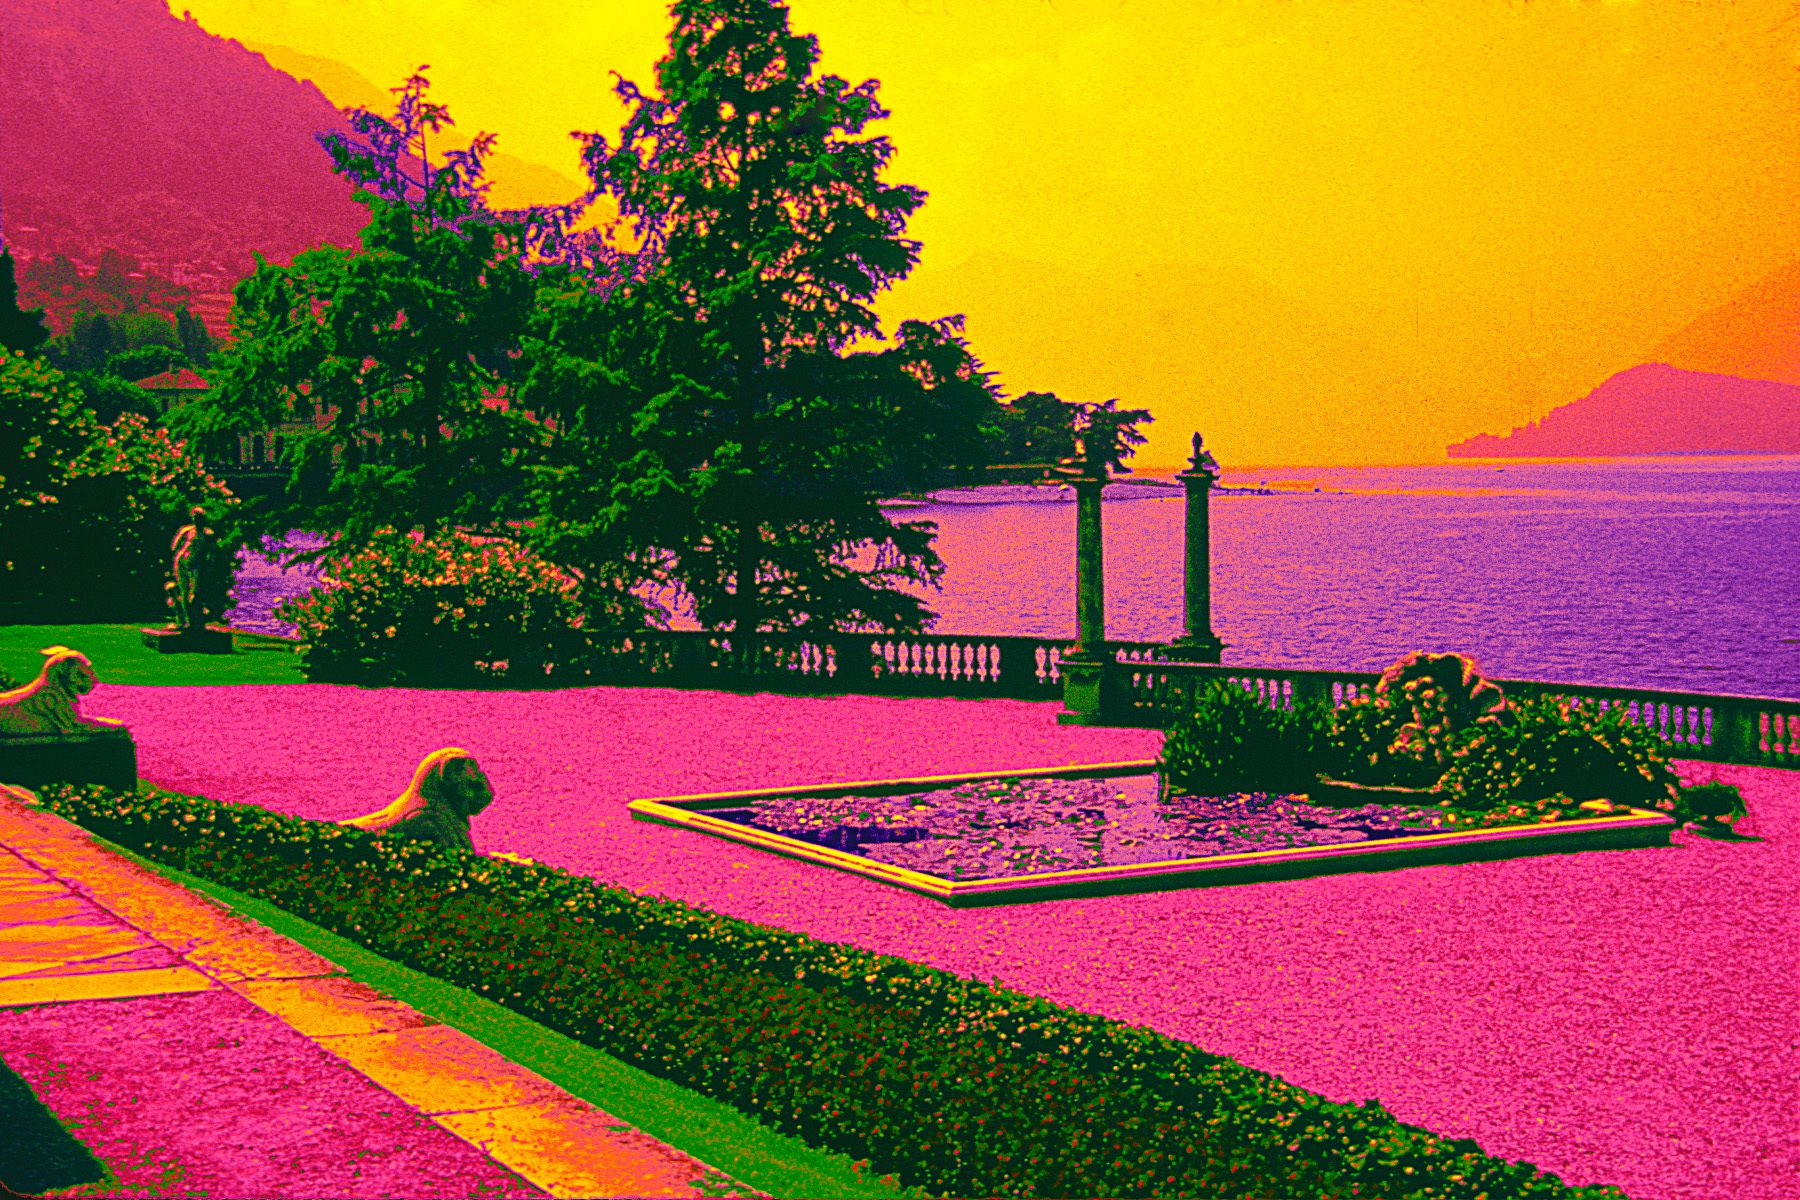 3_0_117_1i_gottlieb_lake_como.jpg